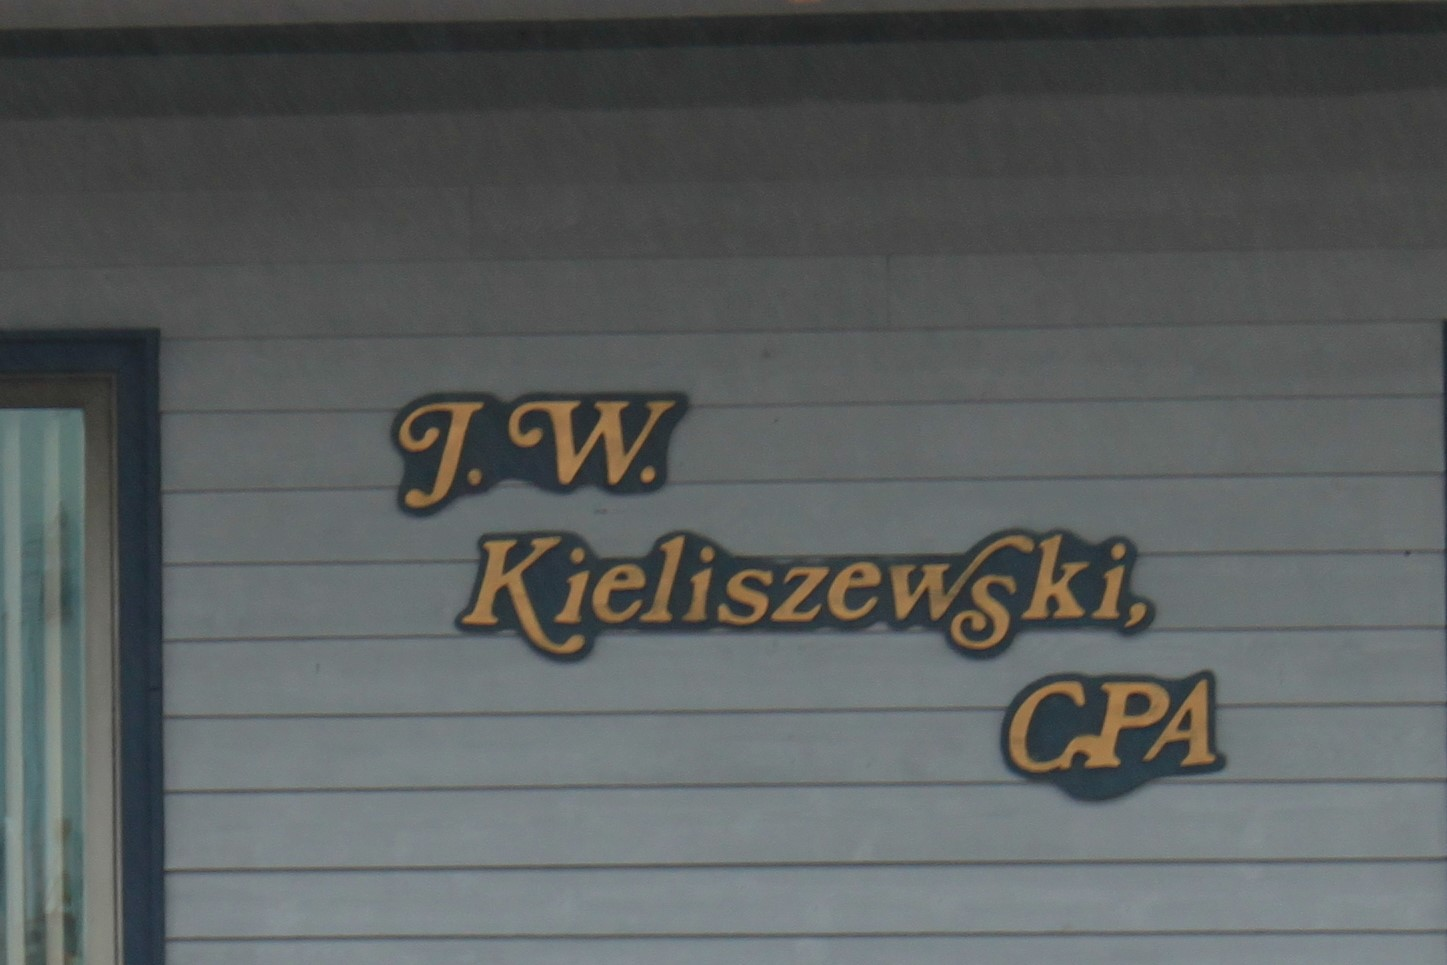 J.W. Kieliszewski CPA, PC - 476 North Third StreetRogers City, MI 49779989-734-4844